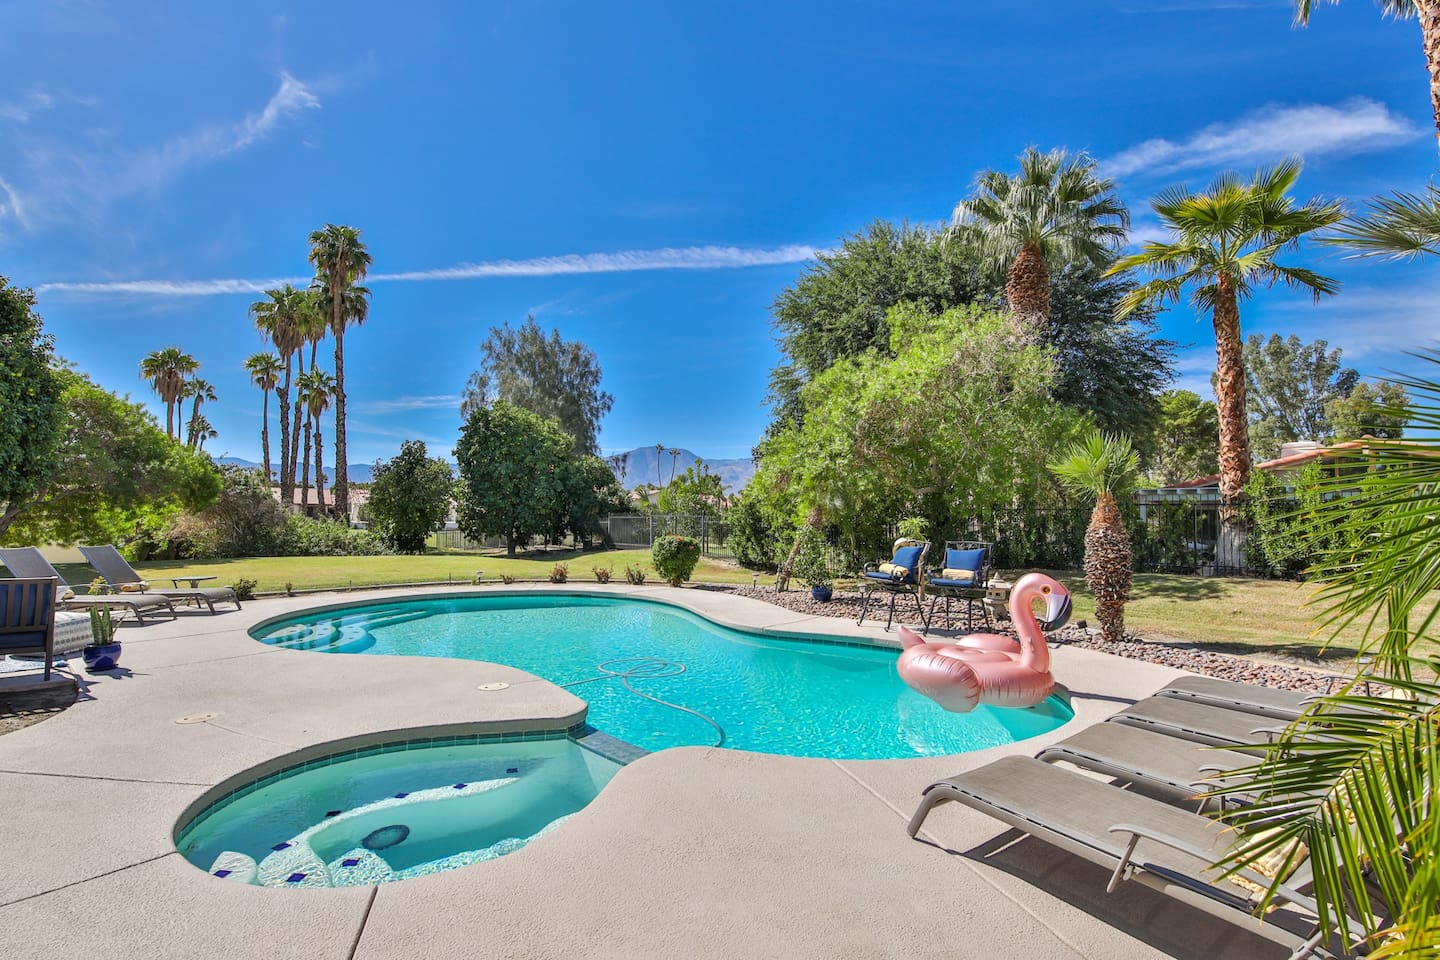 Large Pool with Sun and Shade All Day Private Pool and Spa Resort Home with Mountain Views and Large Natural Grass Yard.